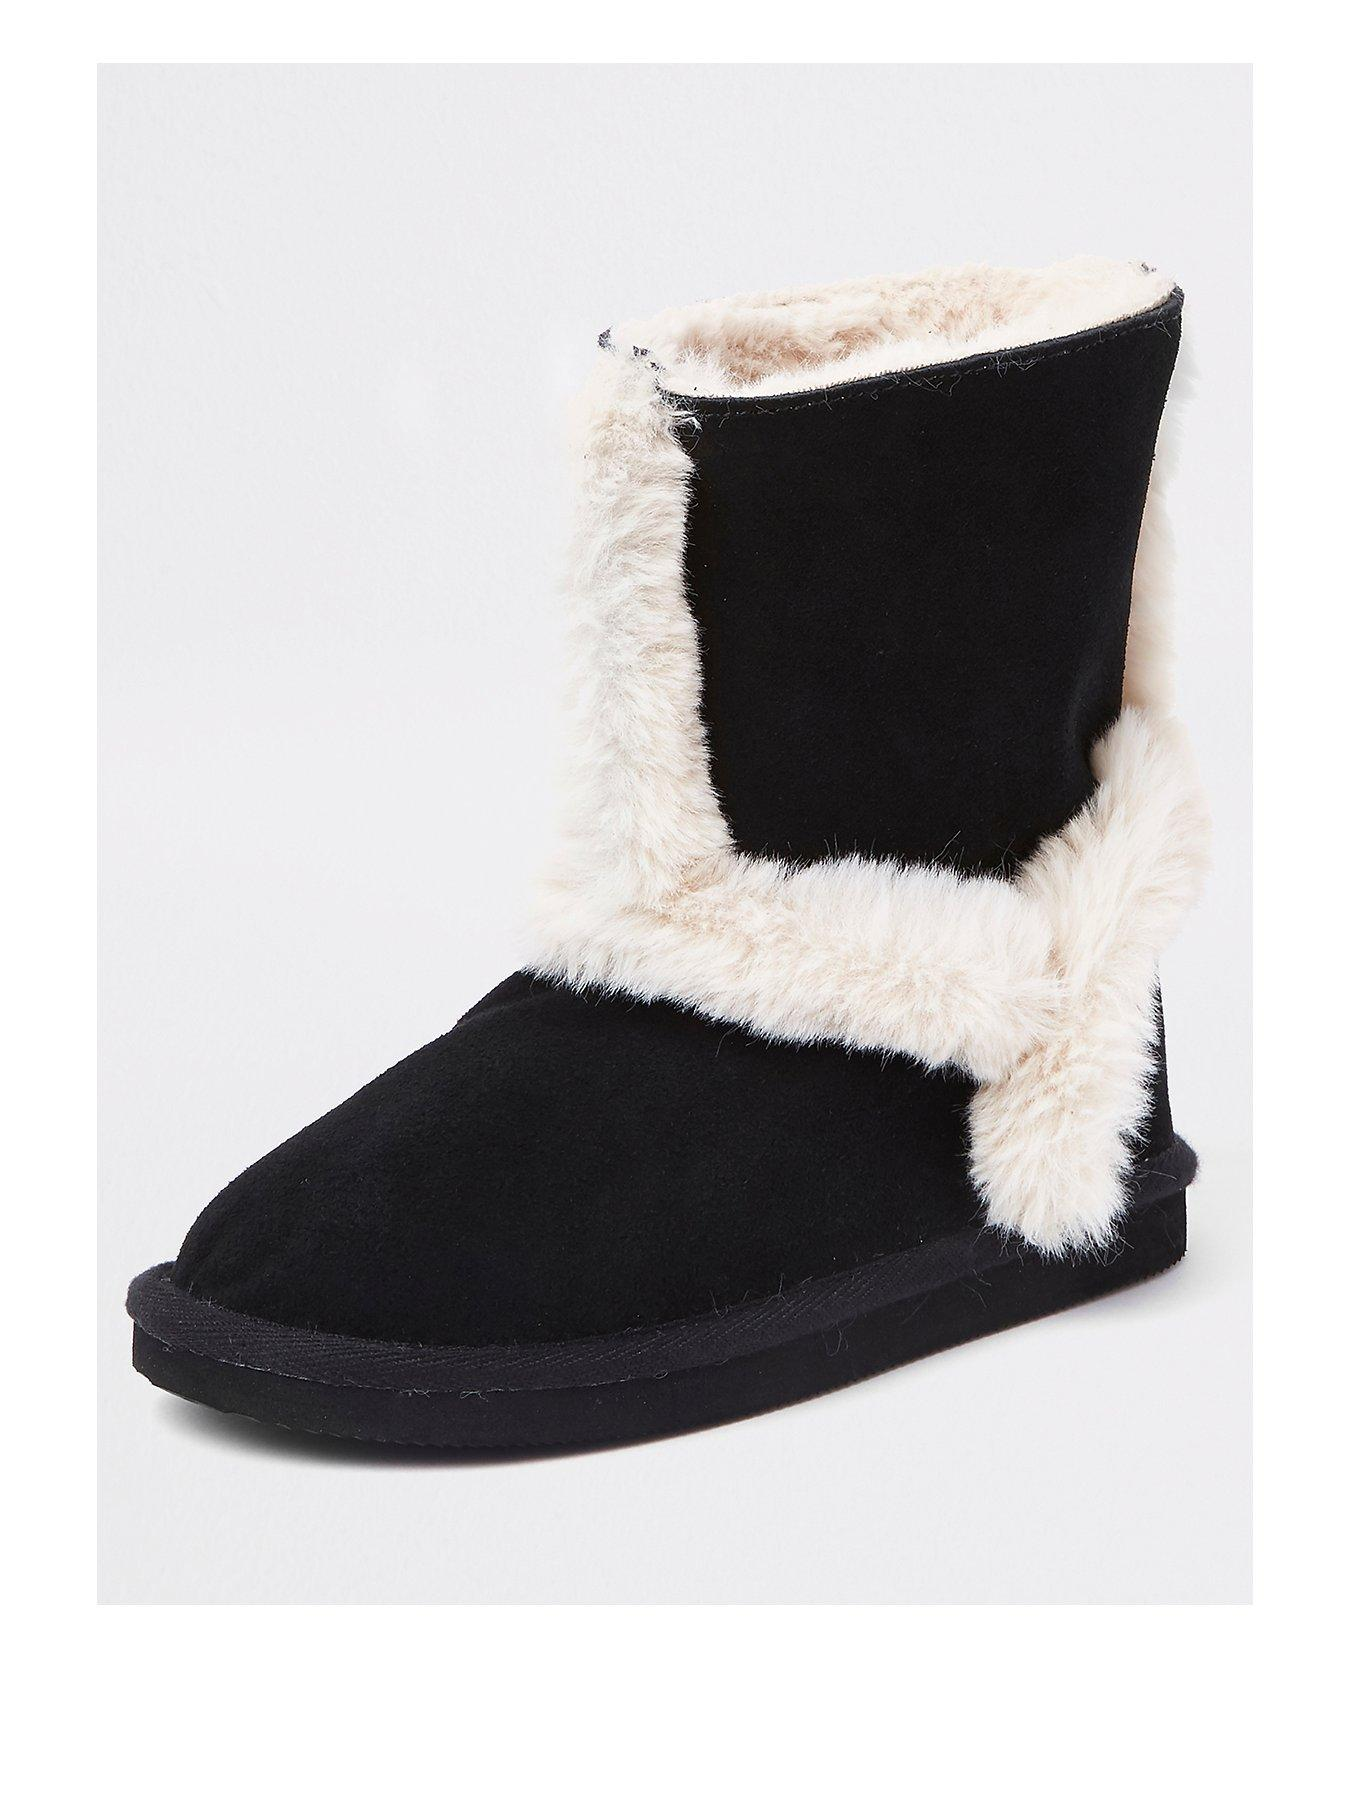 River Island Schuhes Schuhes Schuhes   River Island Stiefel   Very.co  1be999